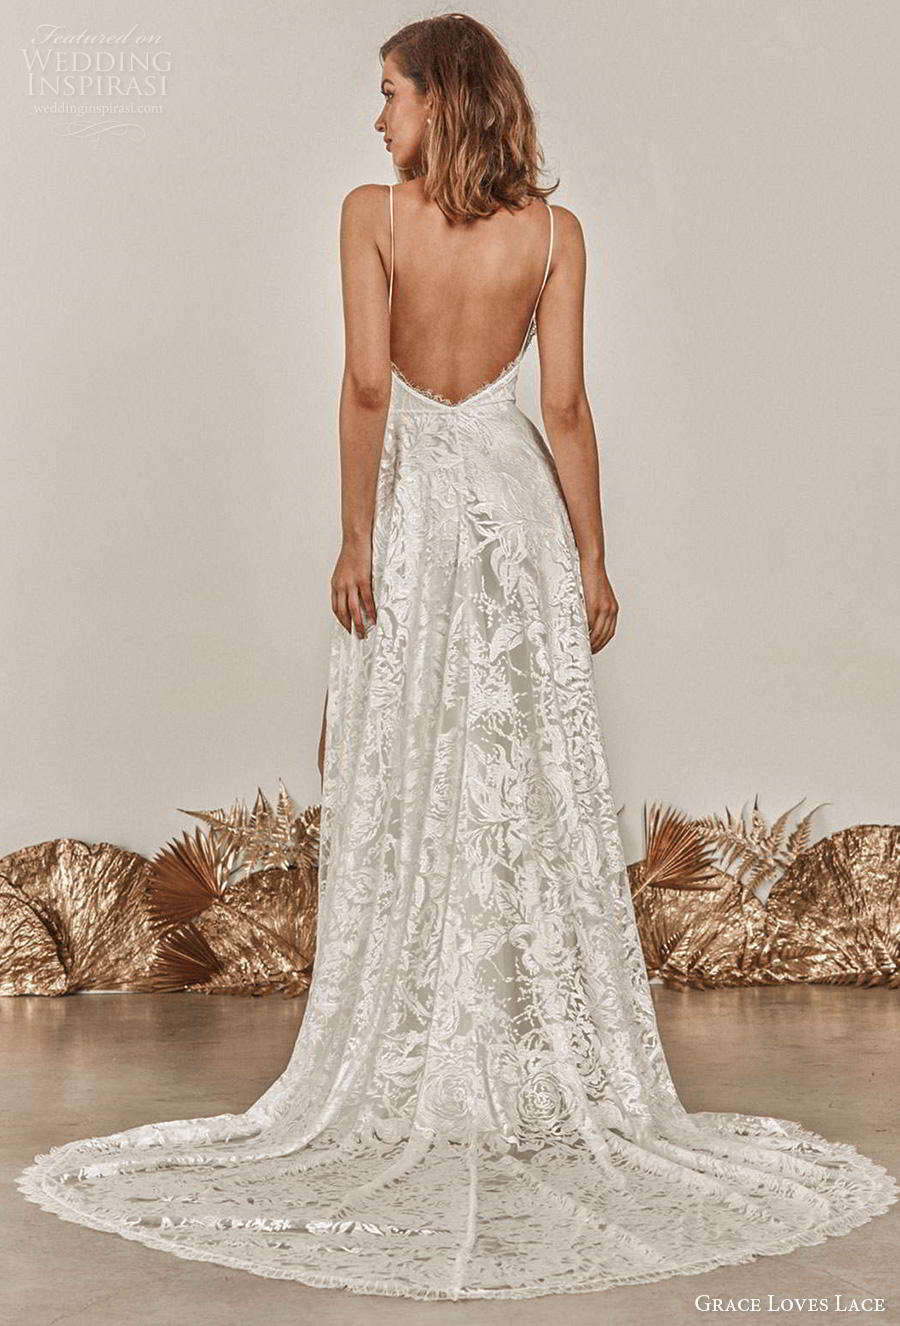 grace love lace 2020 bridal sleeveless spaghetti strap deep v neck full embellishment slit skirt sexy romantic soft a  line wedding dress backless medium train (5) bv